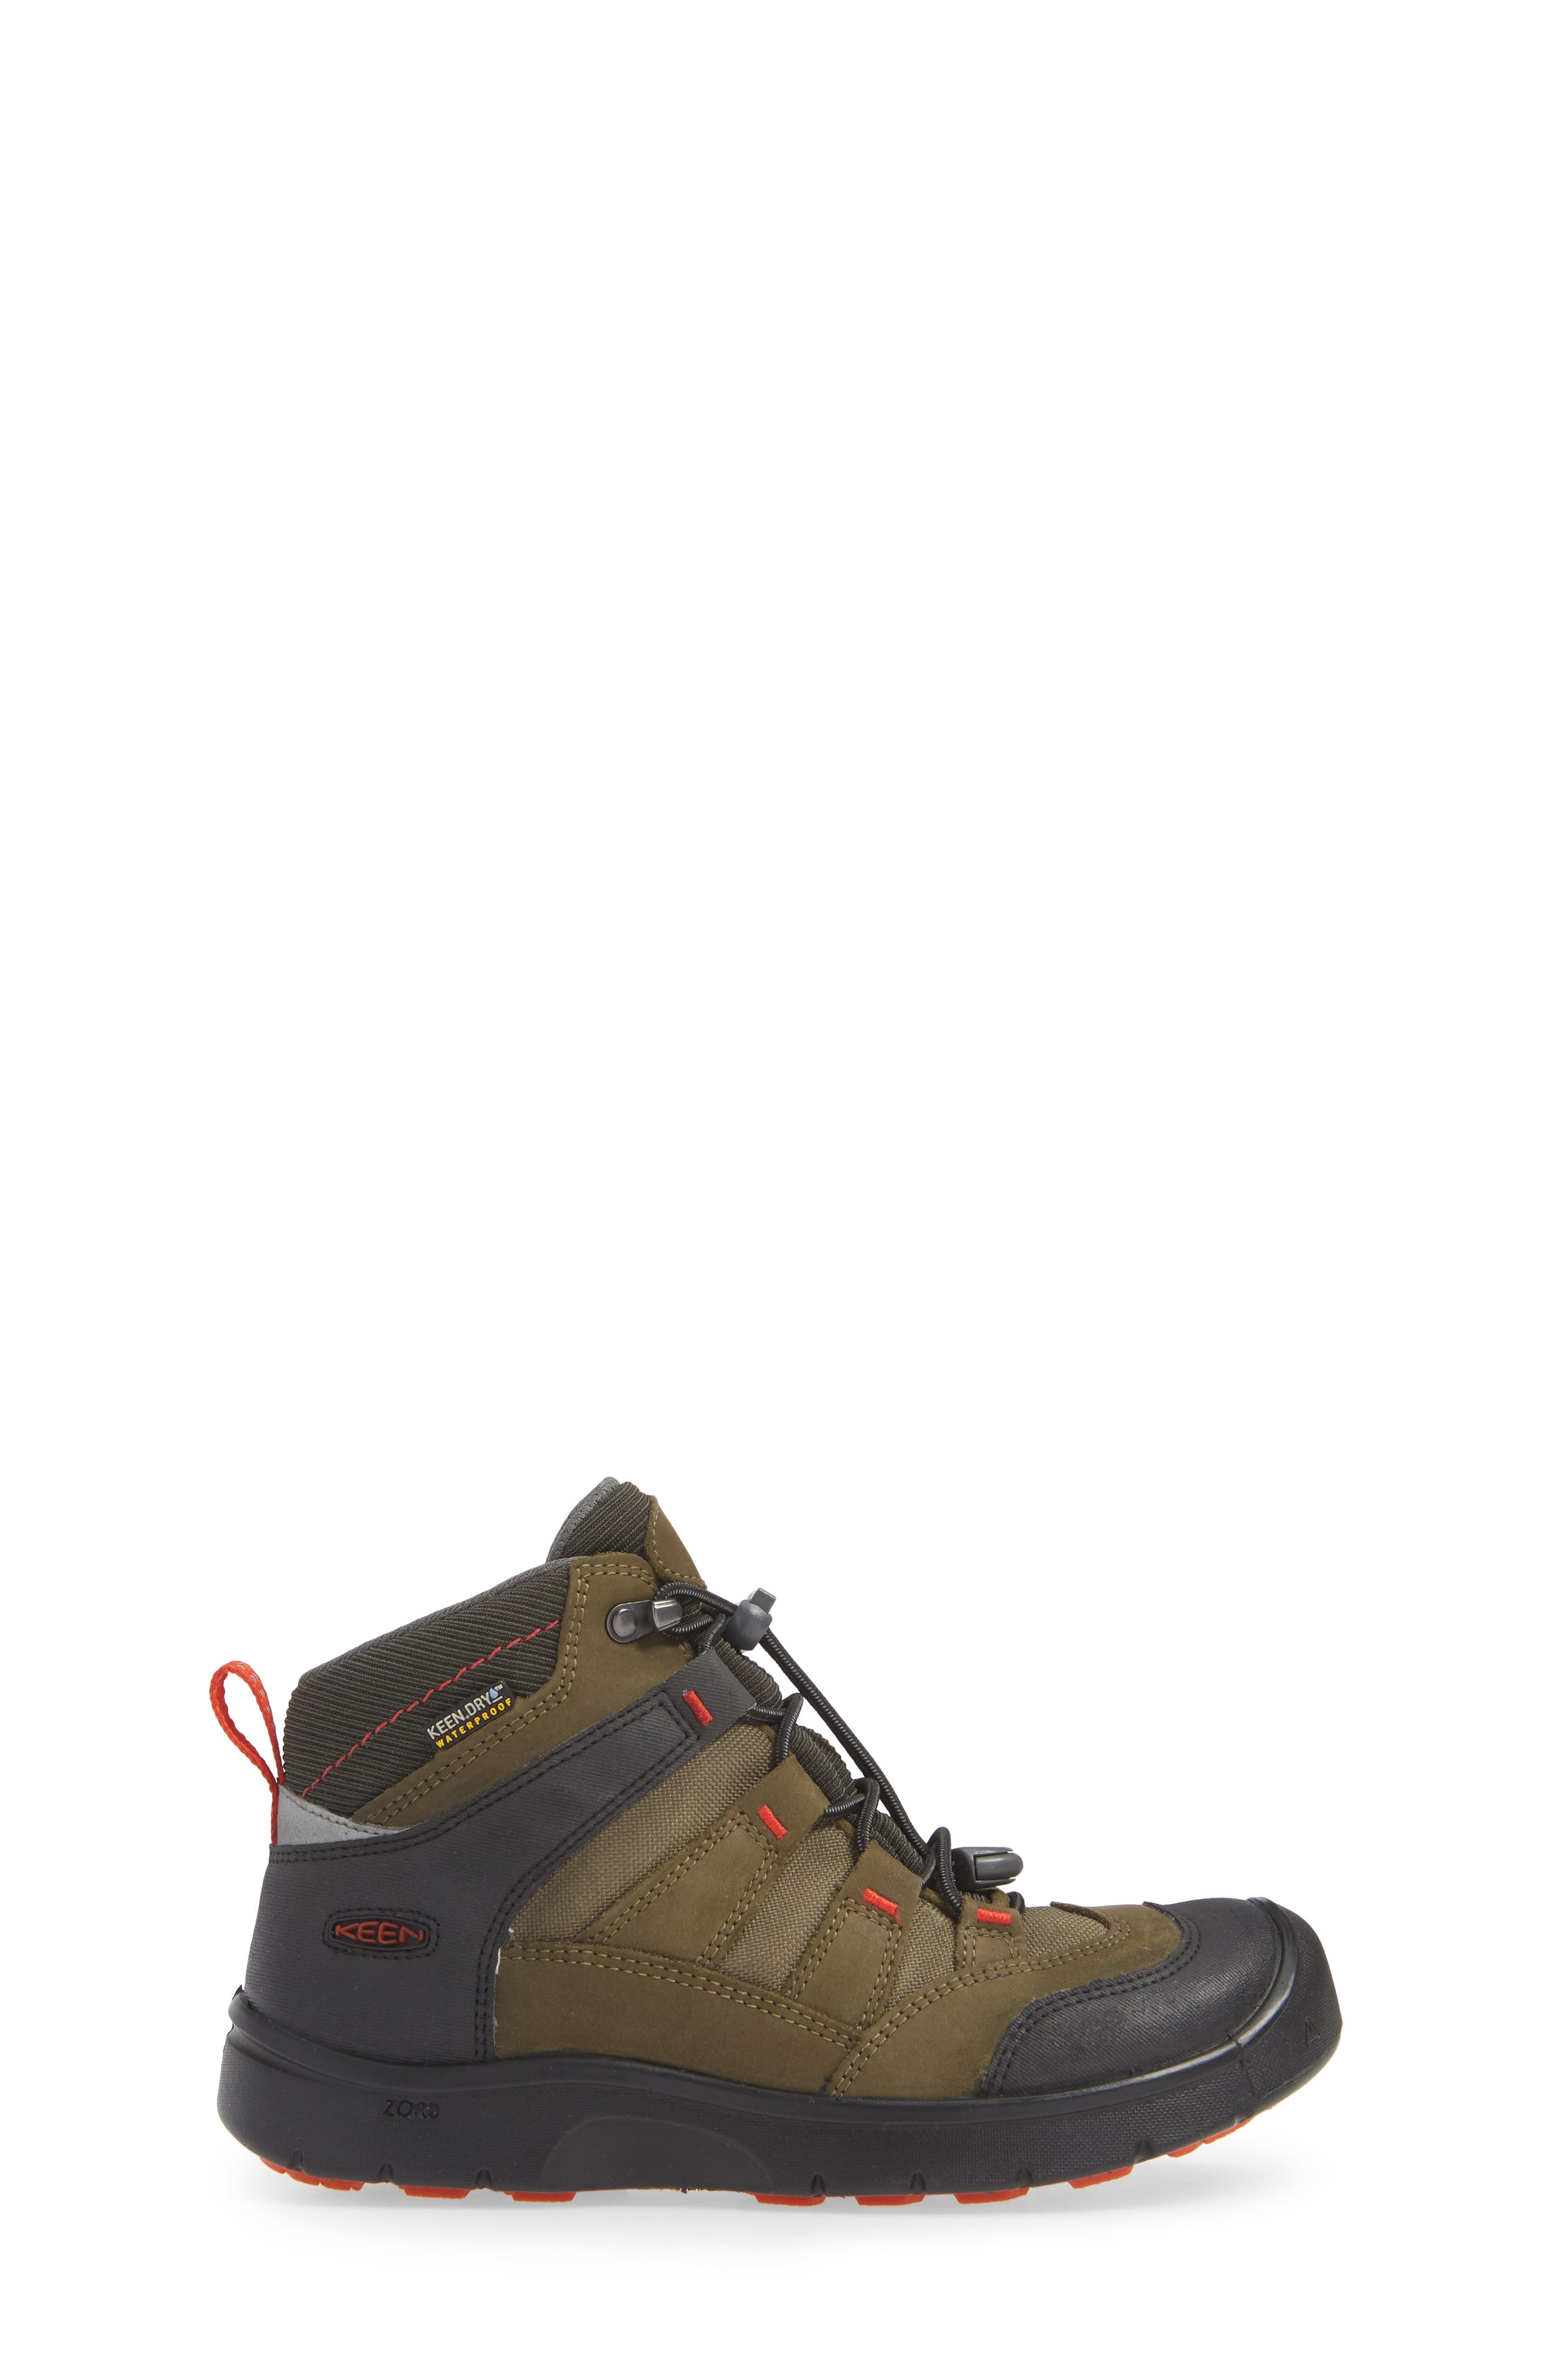 Hikeport Strap Waterproof Mid Boot,                             Alternate thumbnail 3, color,                             MARTINI OLIVE/ PUREED PUMPKIN